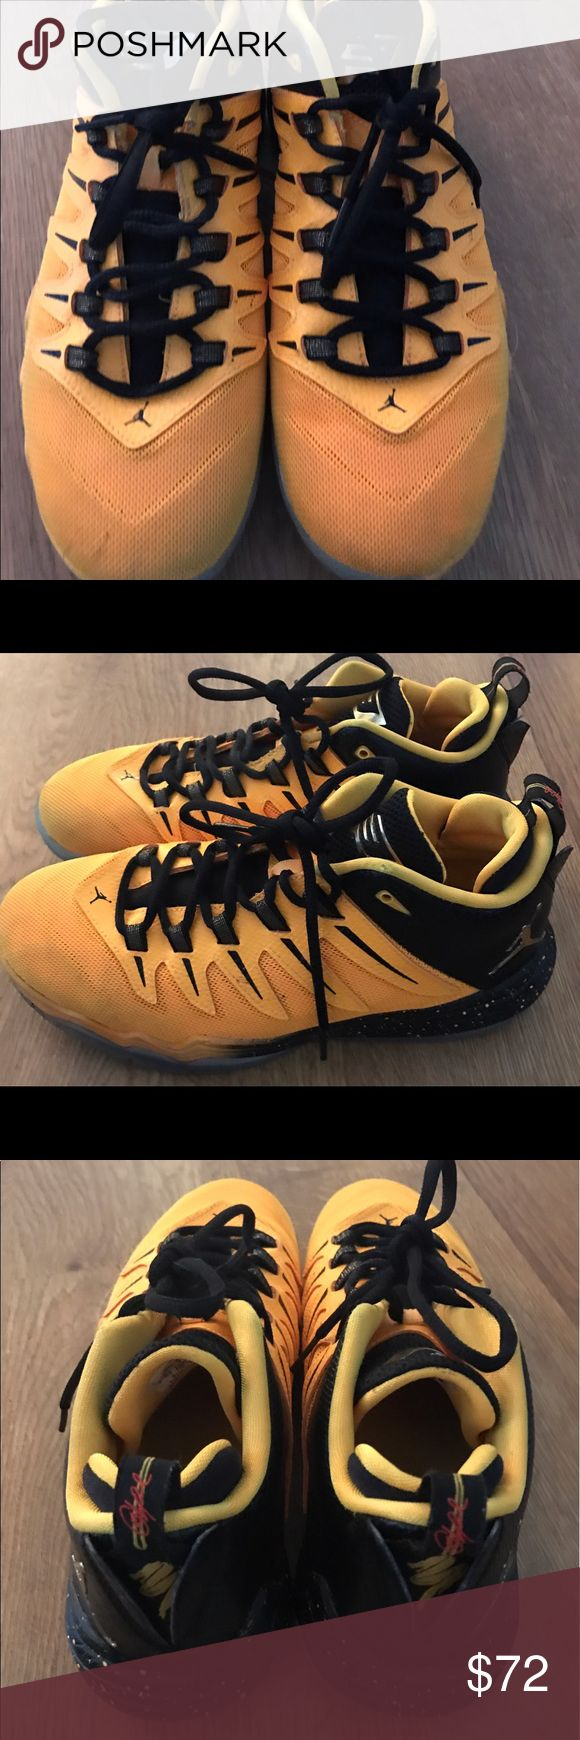 Jordan tennis shoes size 7.y boys yellowish basketball Jordan tennis shoe 2016 version .  Lightly worn.  Has a few nicks but good condition.  Great to start the new school year out with these top rated tennis shoes on! Jordan Shoes Sneakers